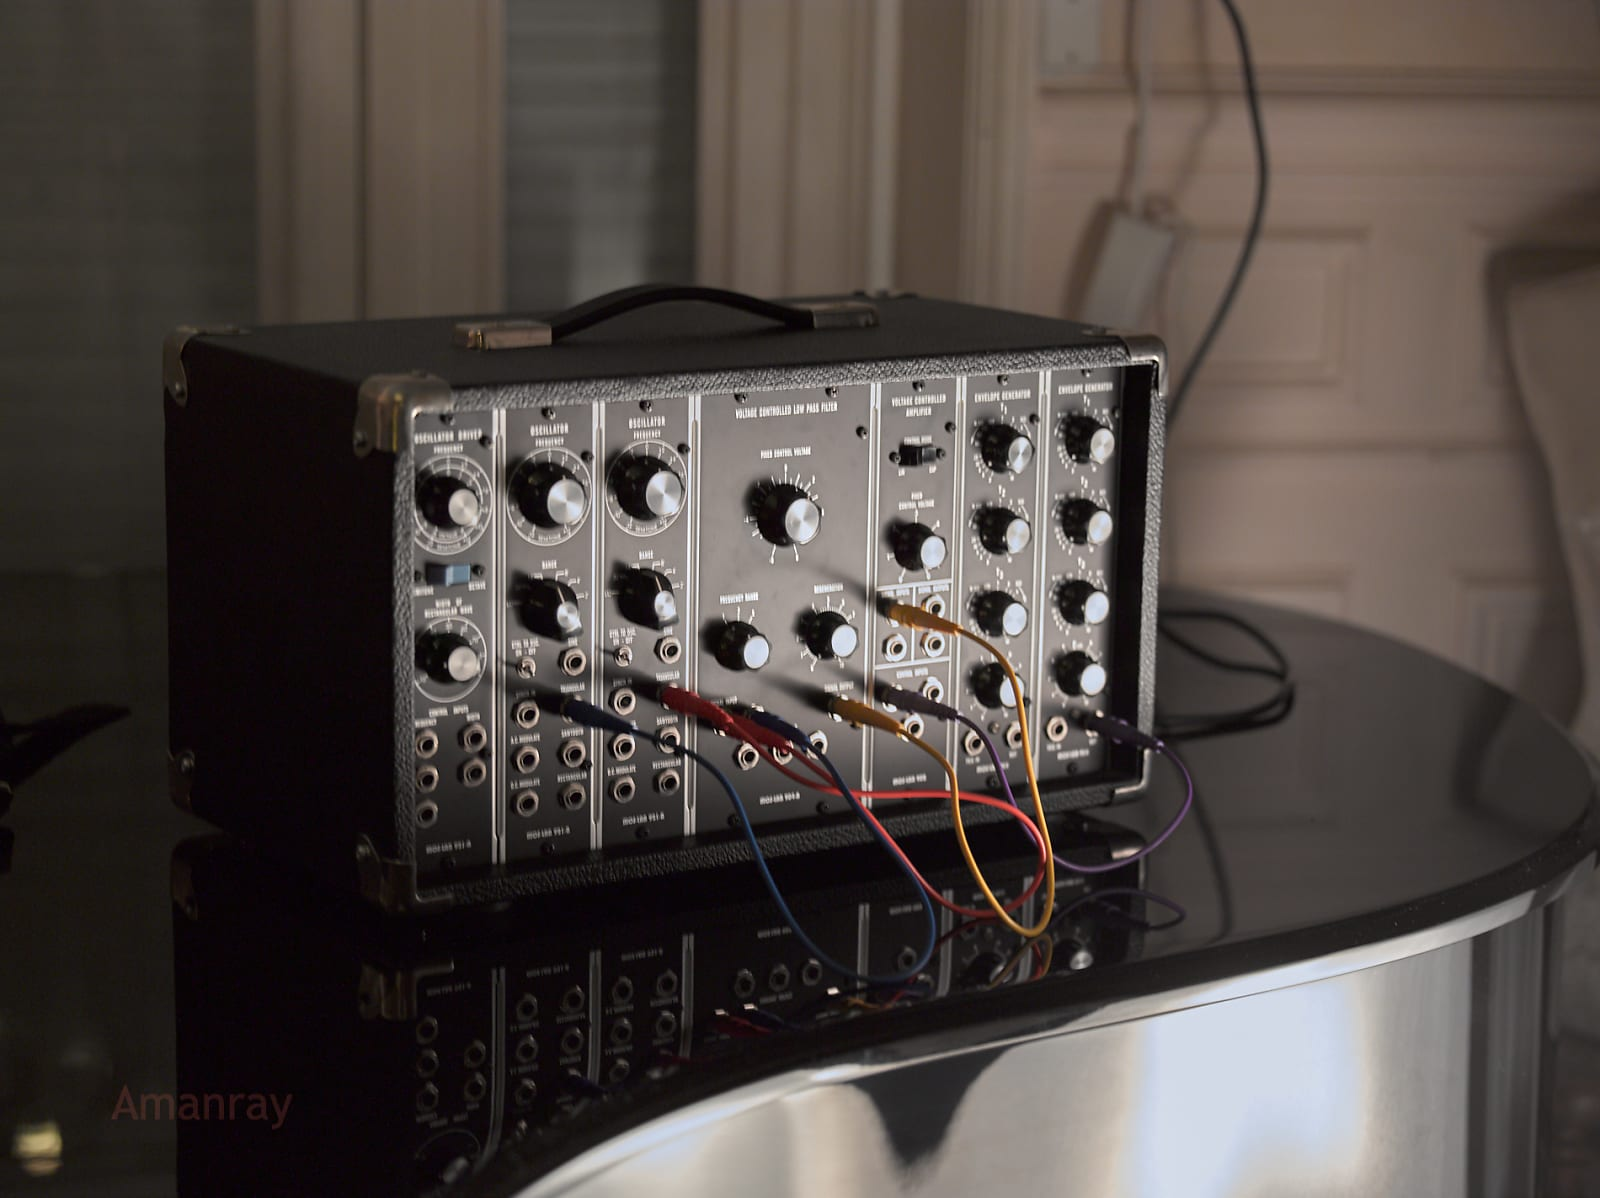 matrixsynth moog model 8a modular synthesizer clone by moslab. Black Bedroom Furniture Sets. Home Design Ideas